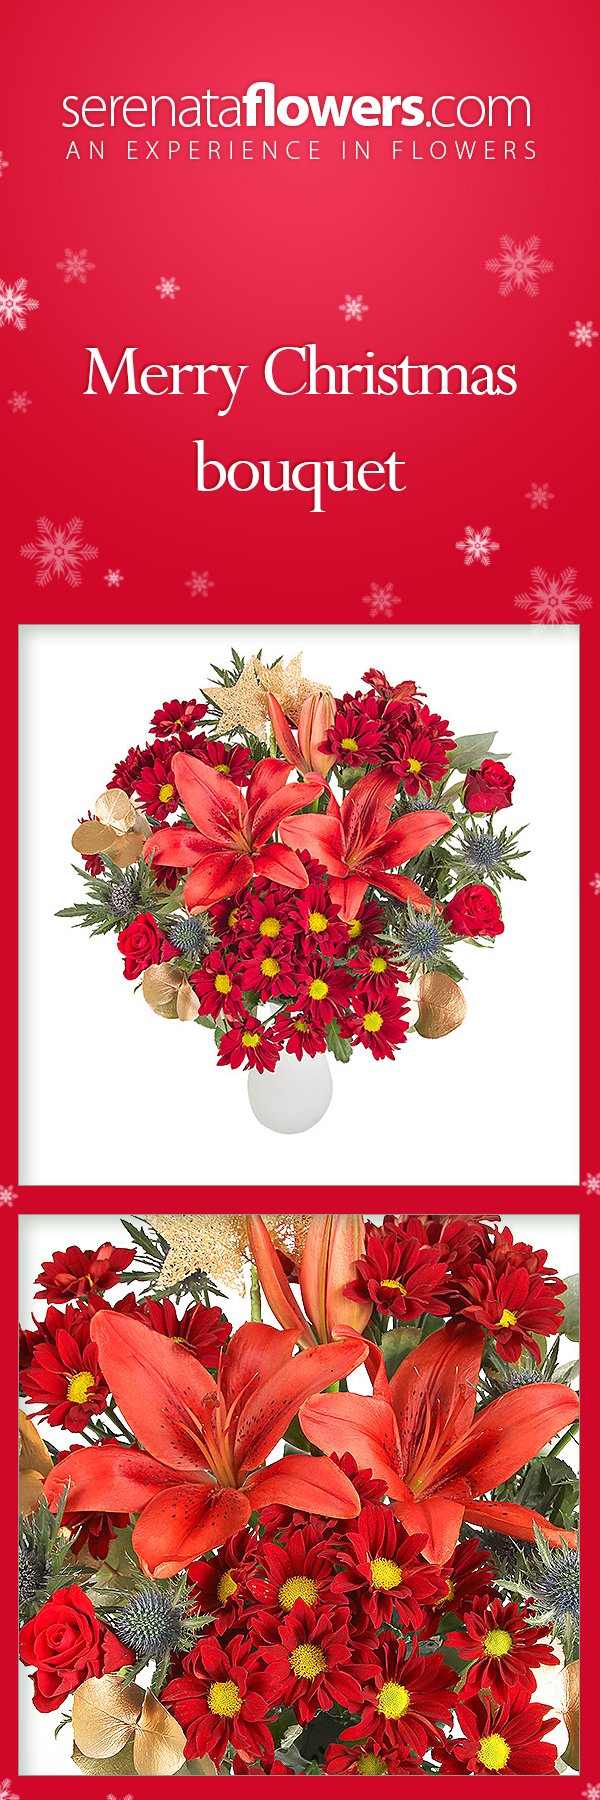 Christmas roses lilies orange red bouquet christmasflowers